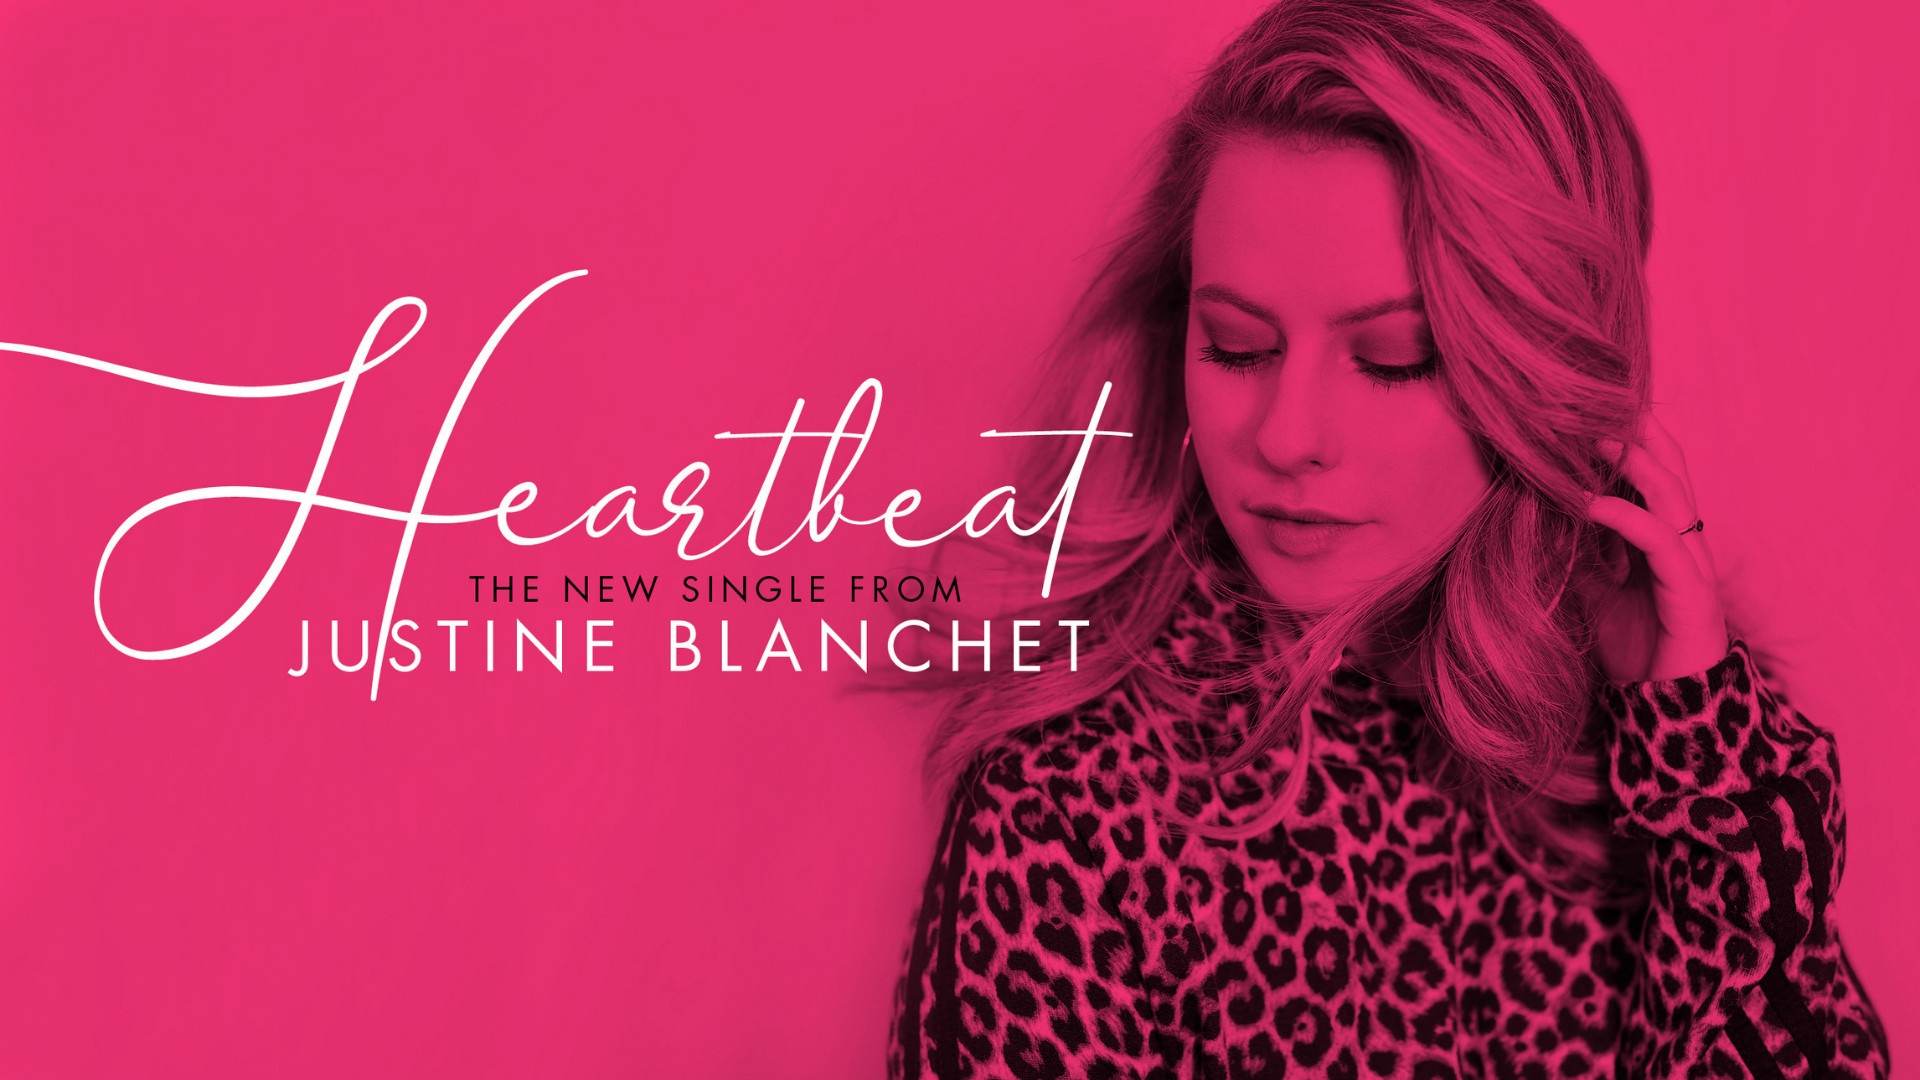 Justine Blanchet I Official Website